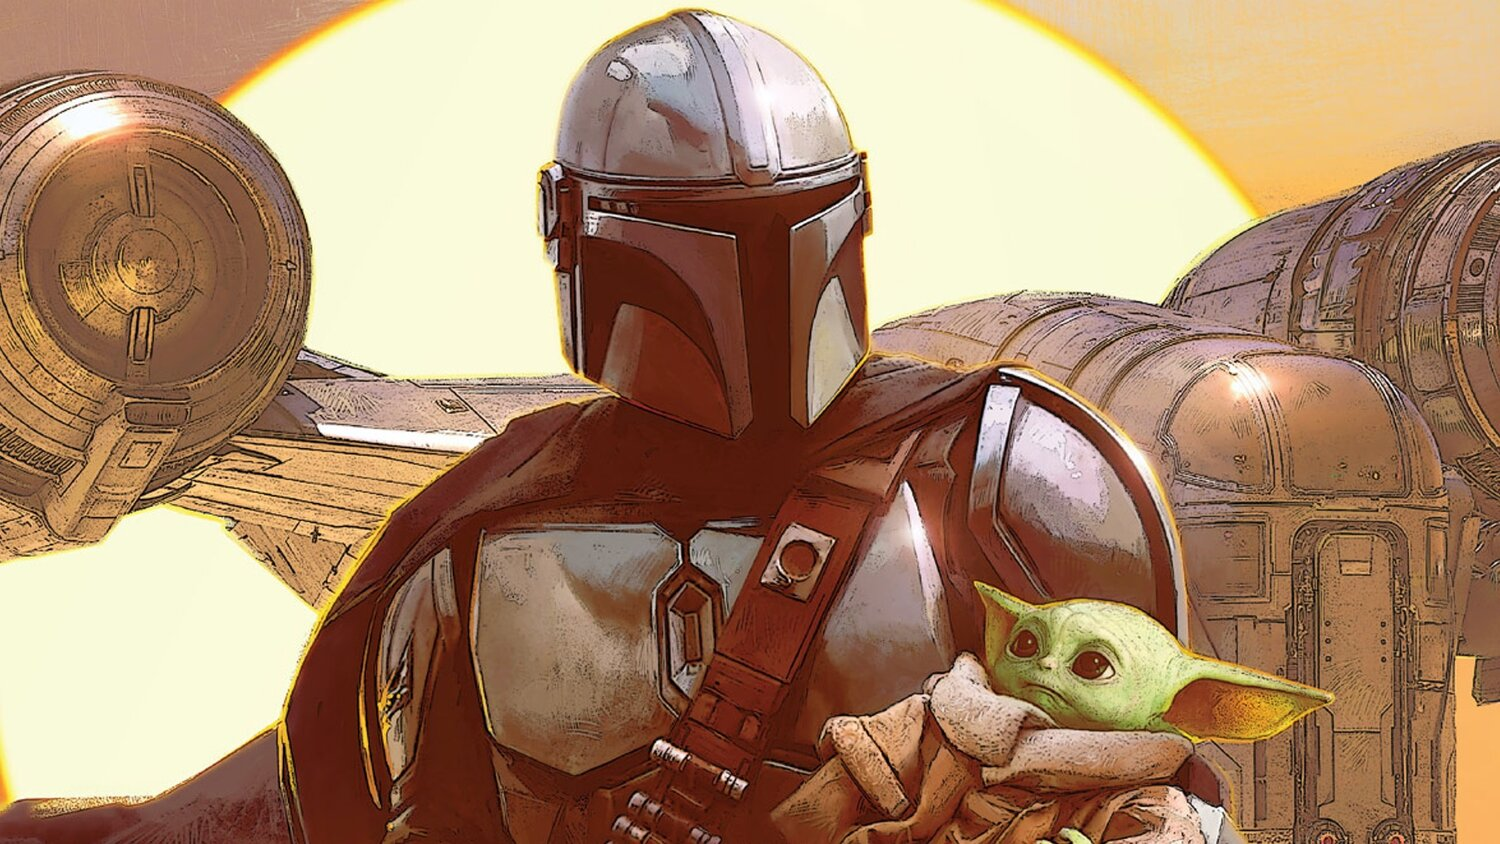 THE MANDALORIAN Is Getting a Line of Books That Will Dive Deeper into the Series